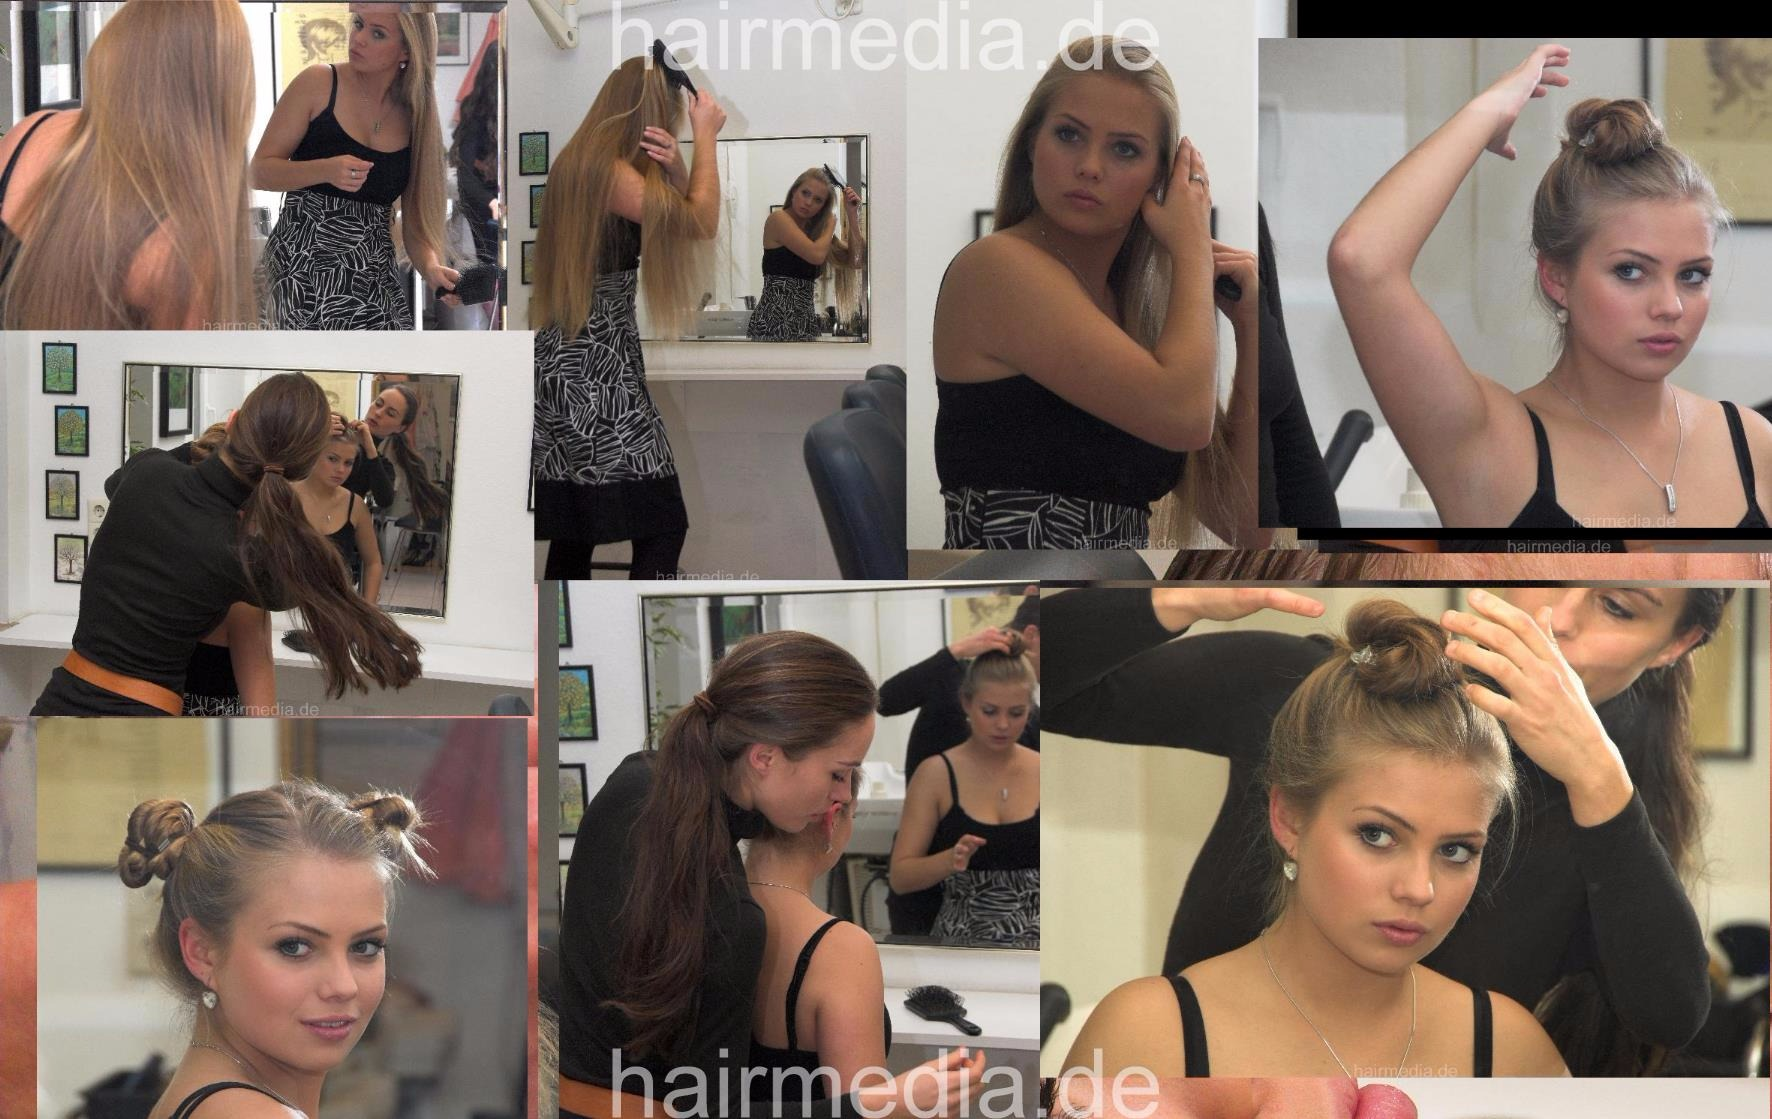 192 Malin Demo hair play HD video for download